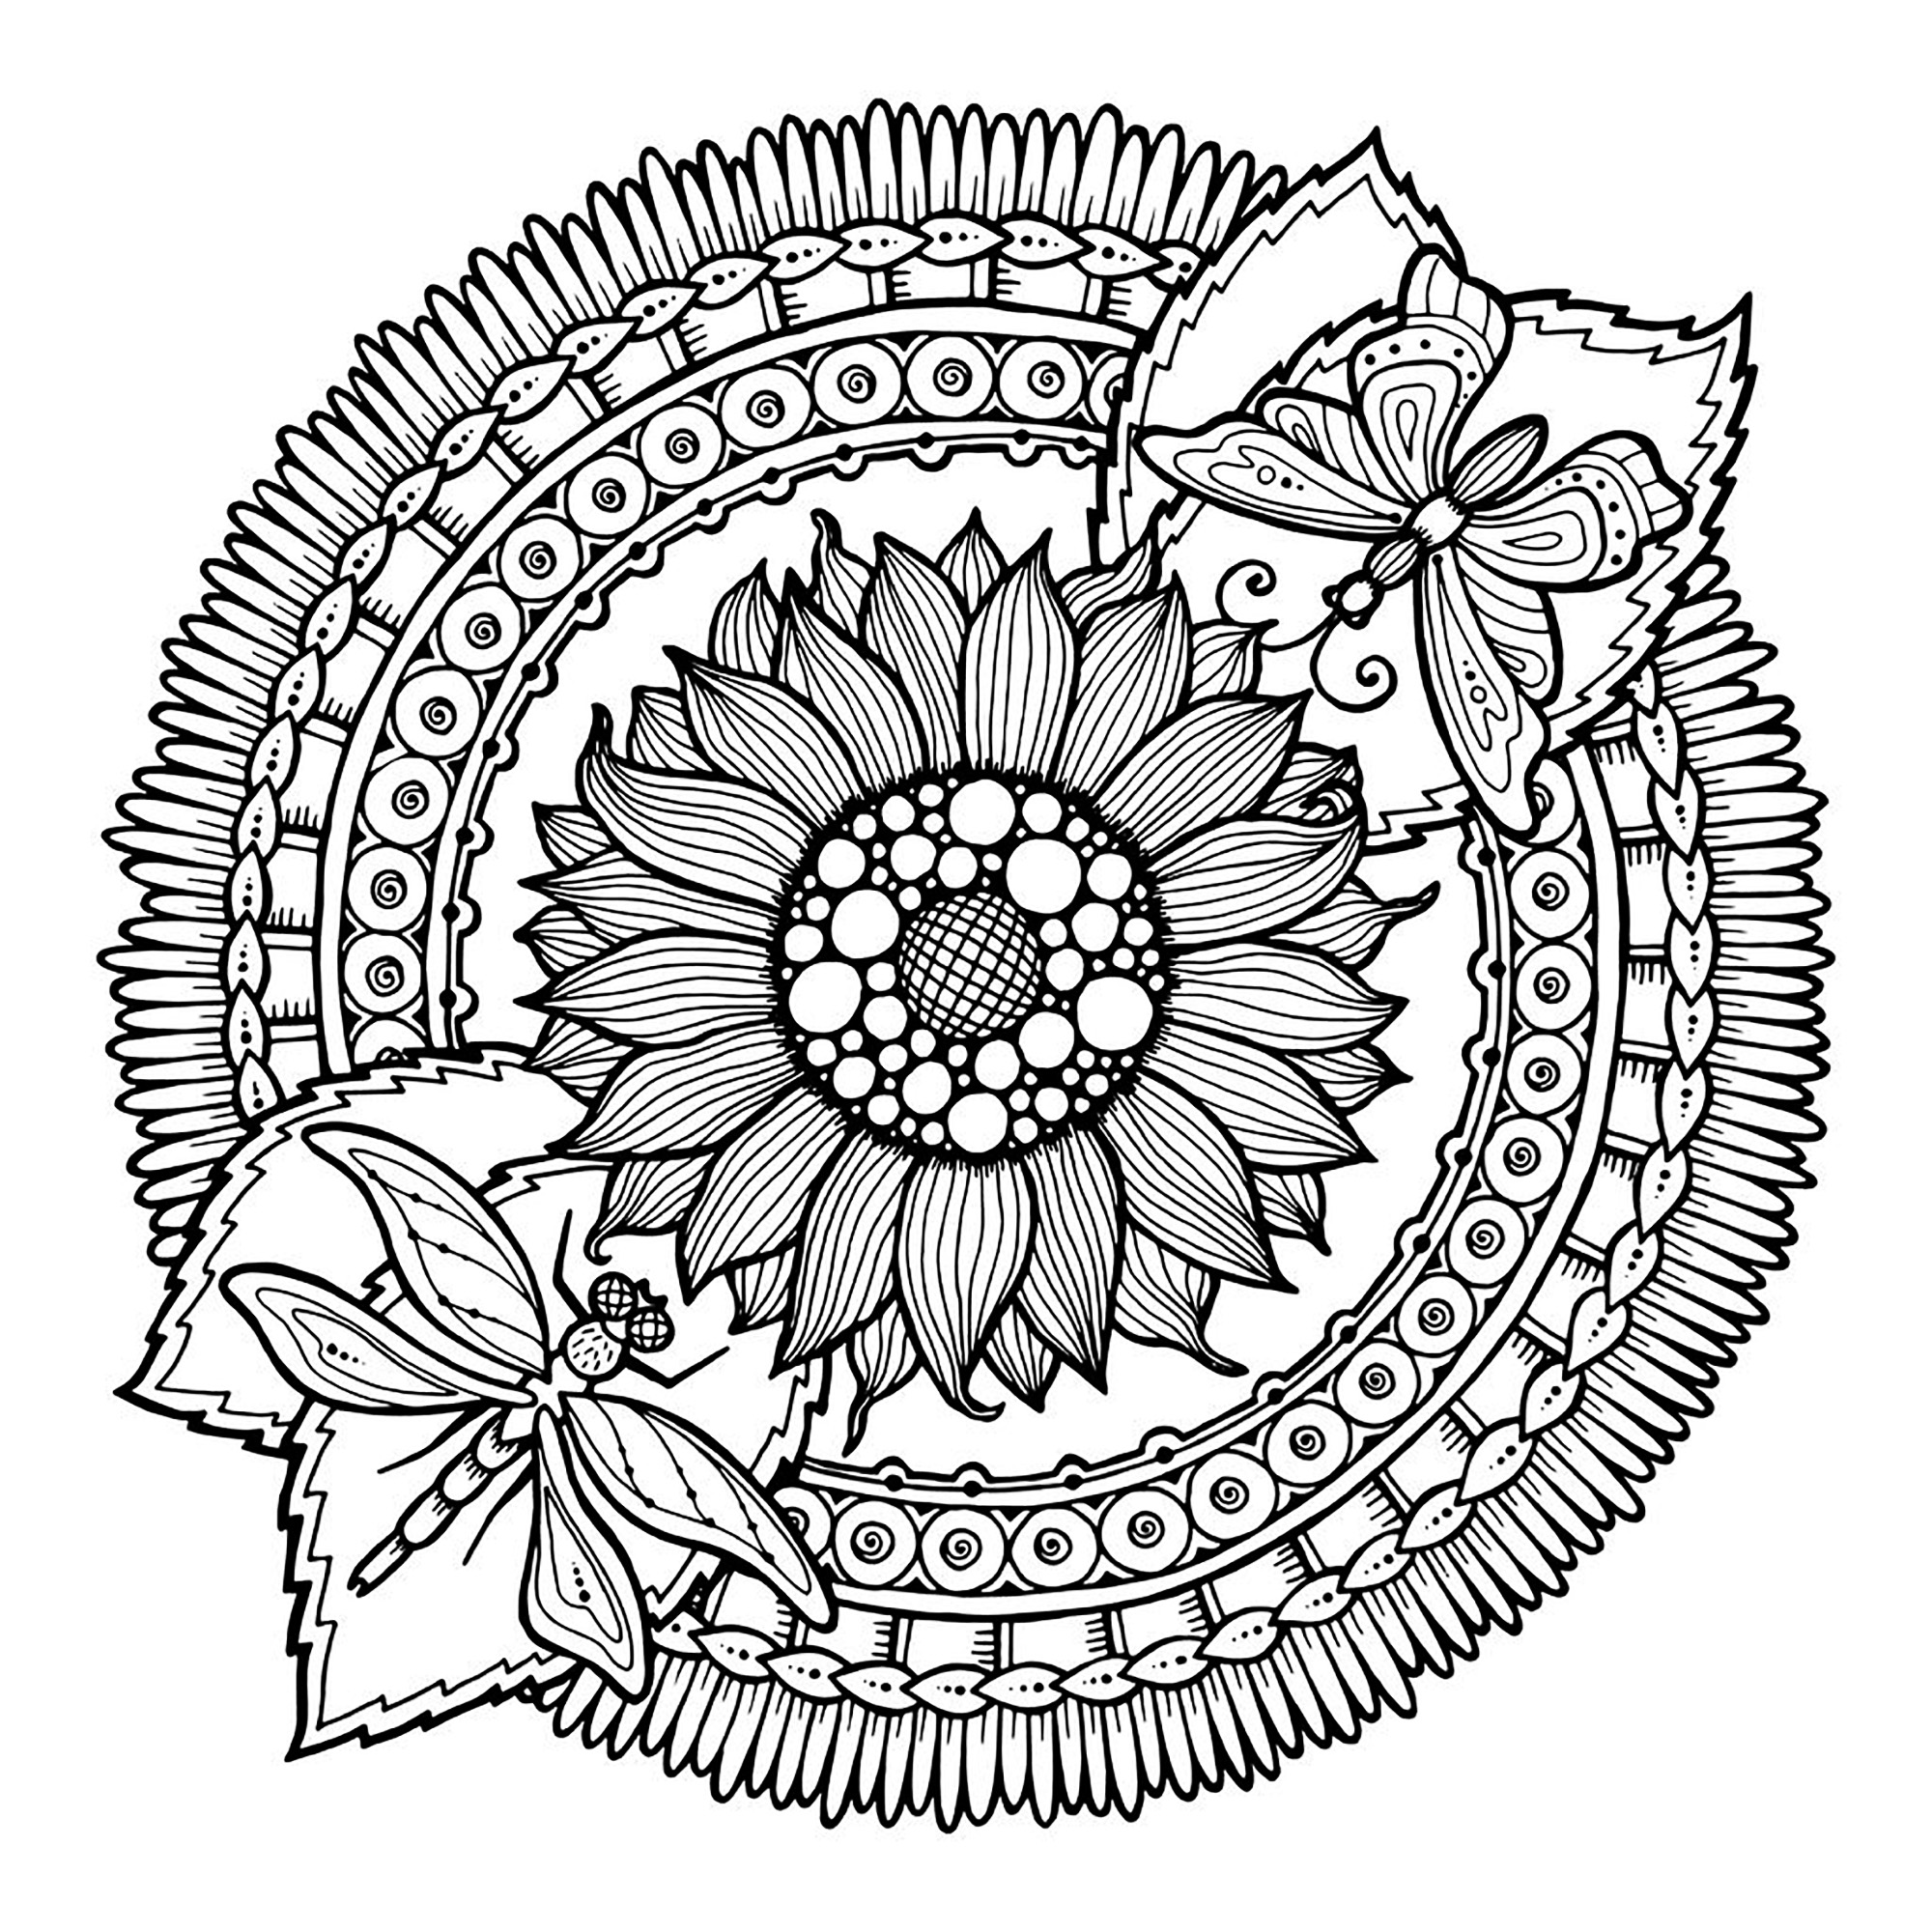 mandala with dragonflies and flowers from the gallery mandalas artist julias negireva - Adult Coloring Pages Mandala